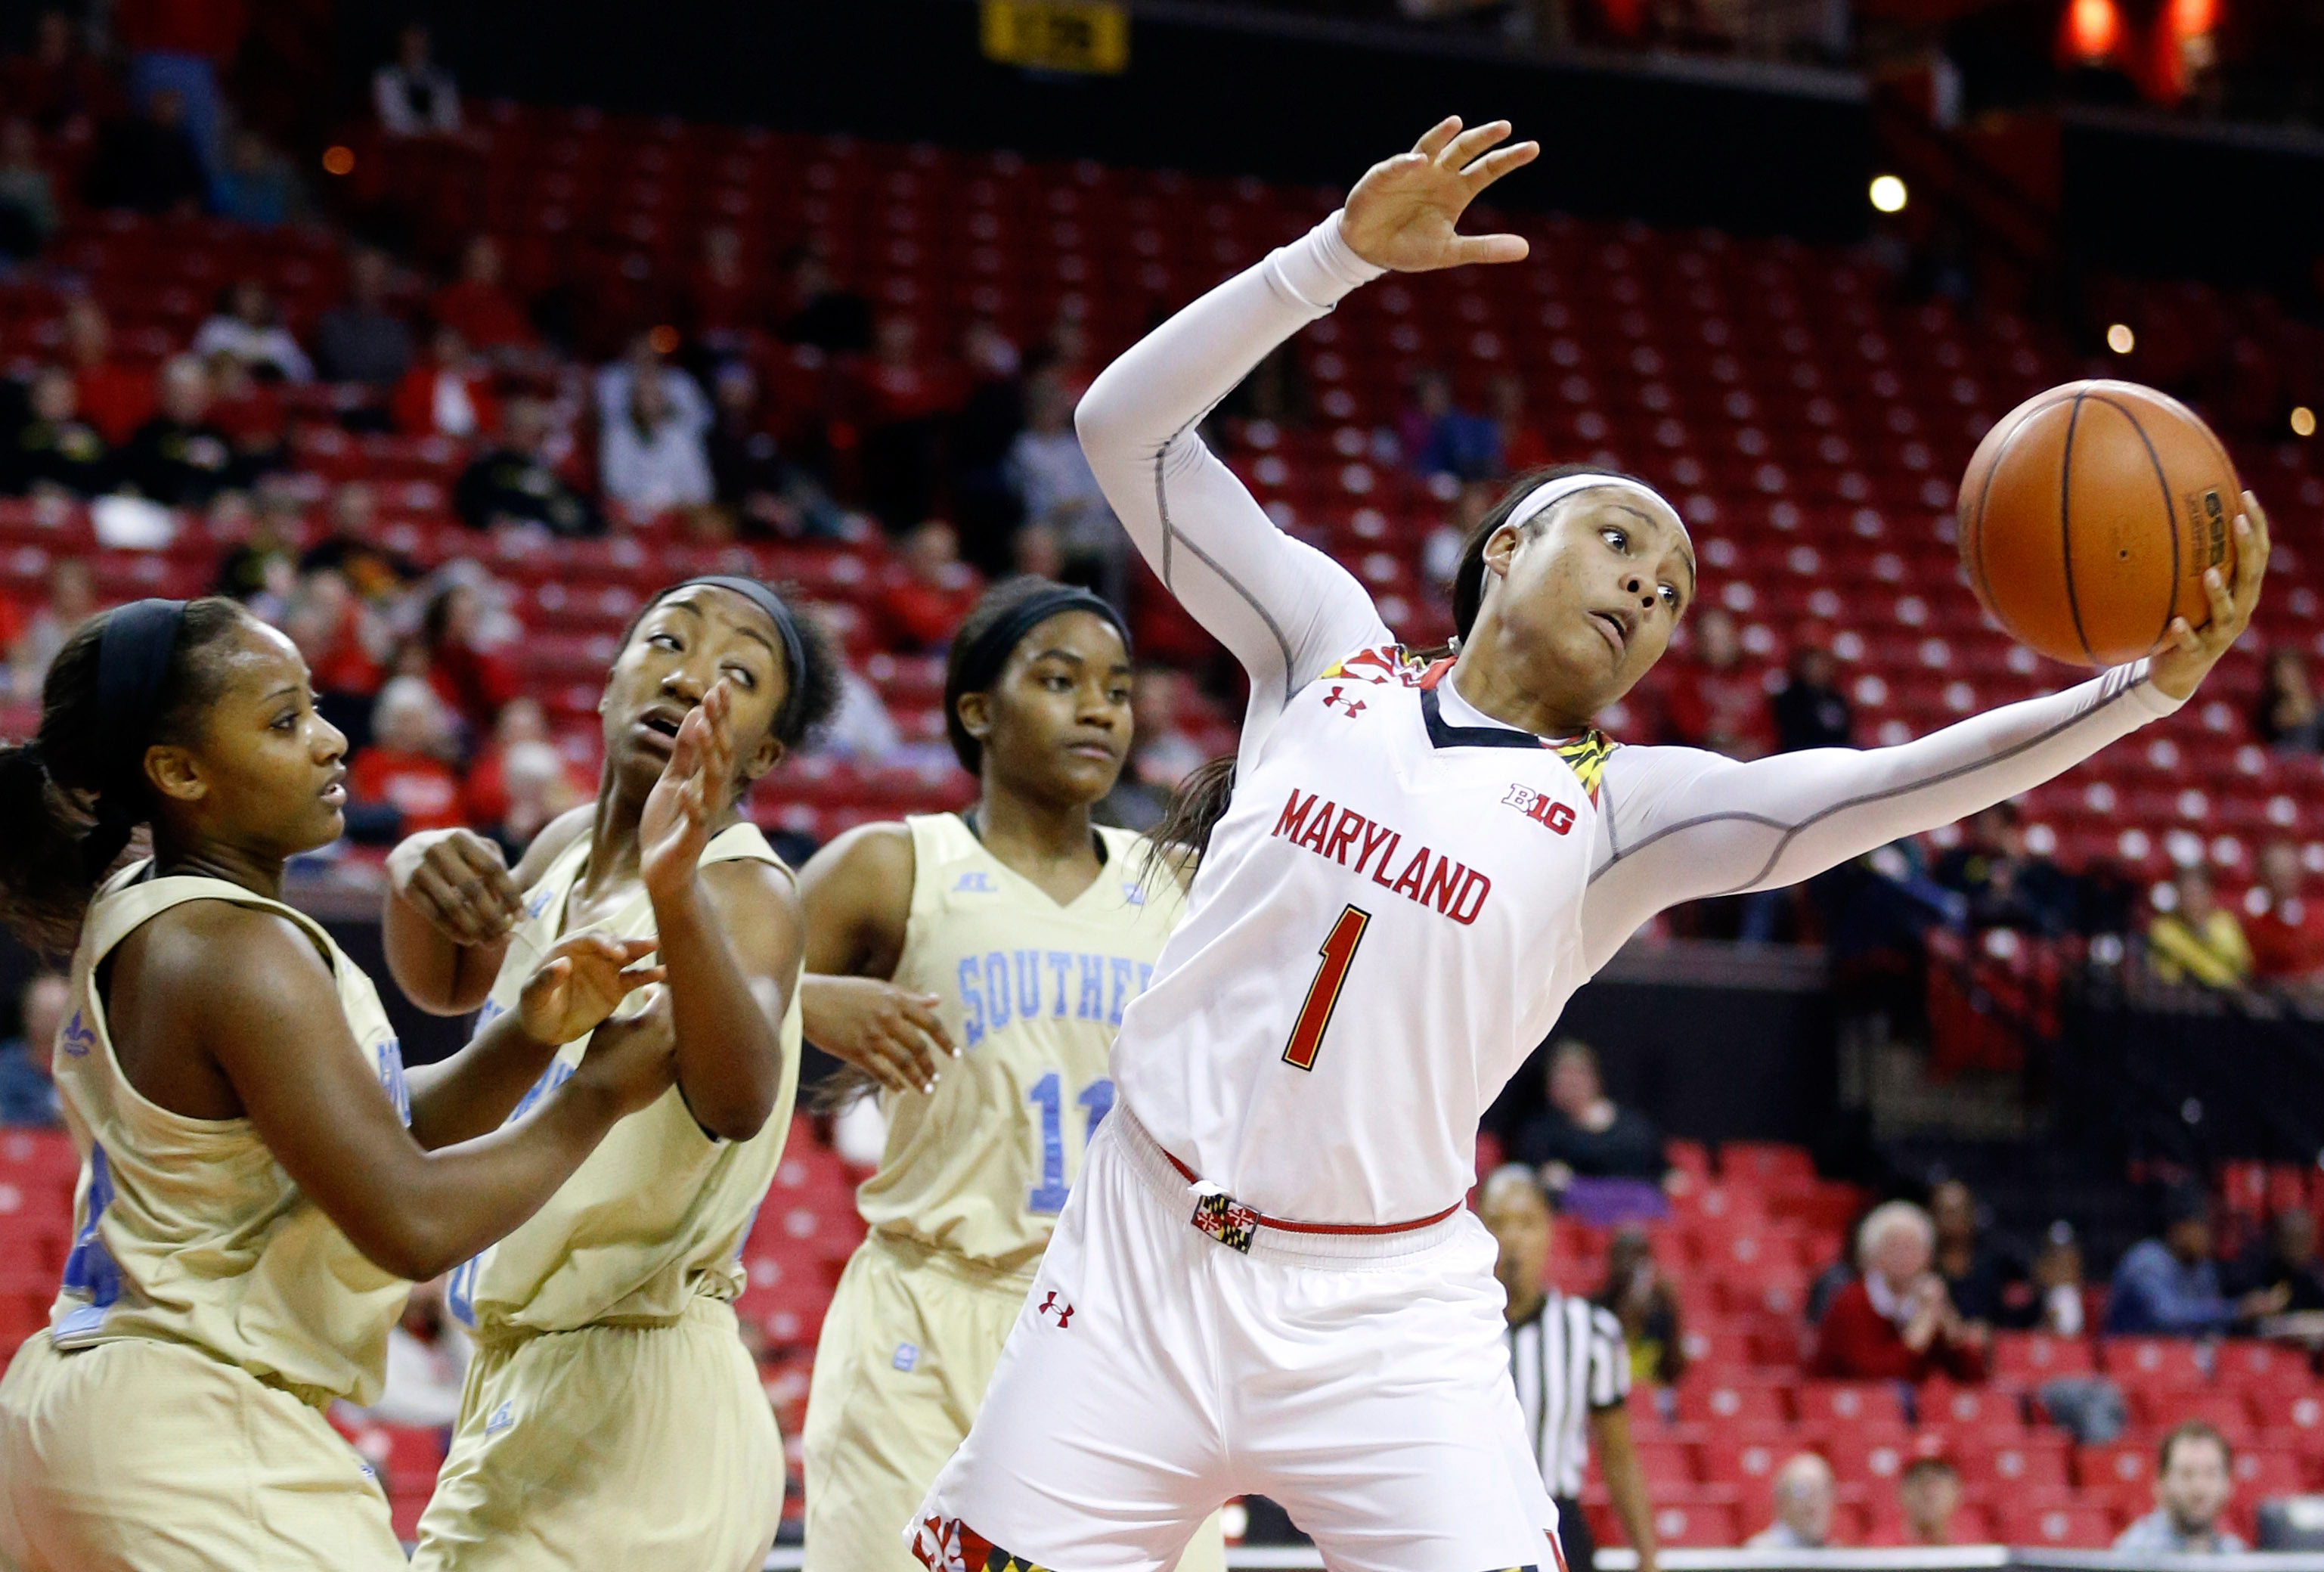 Kiah Gillespie is in her sophomore season at the University of Maryland after her 2,000-point career at Capital Prep. Gillespie is one of three Meriden natives playing Division I college basketball this winter. (AP Photo/Patrick Semansky)